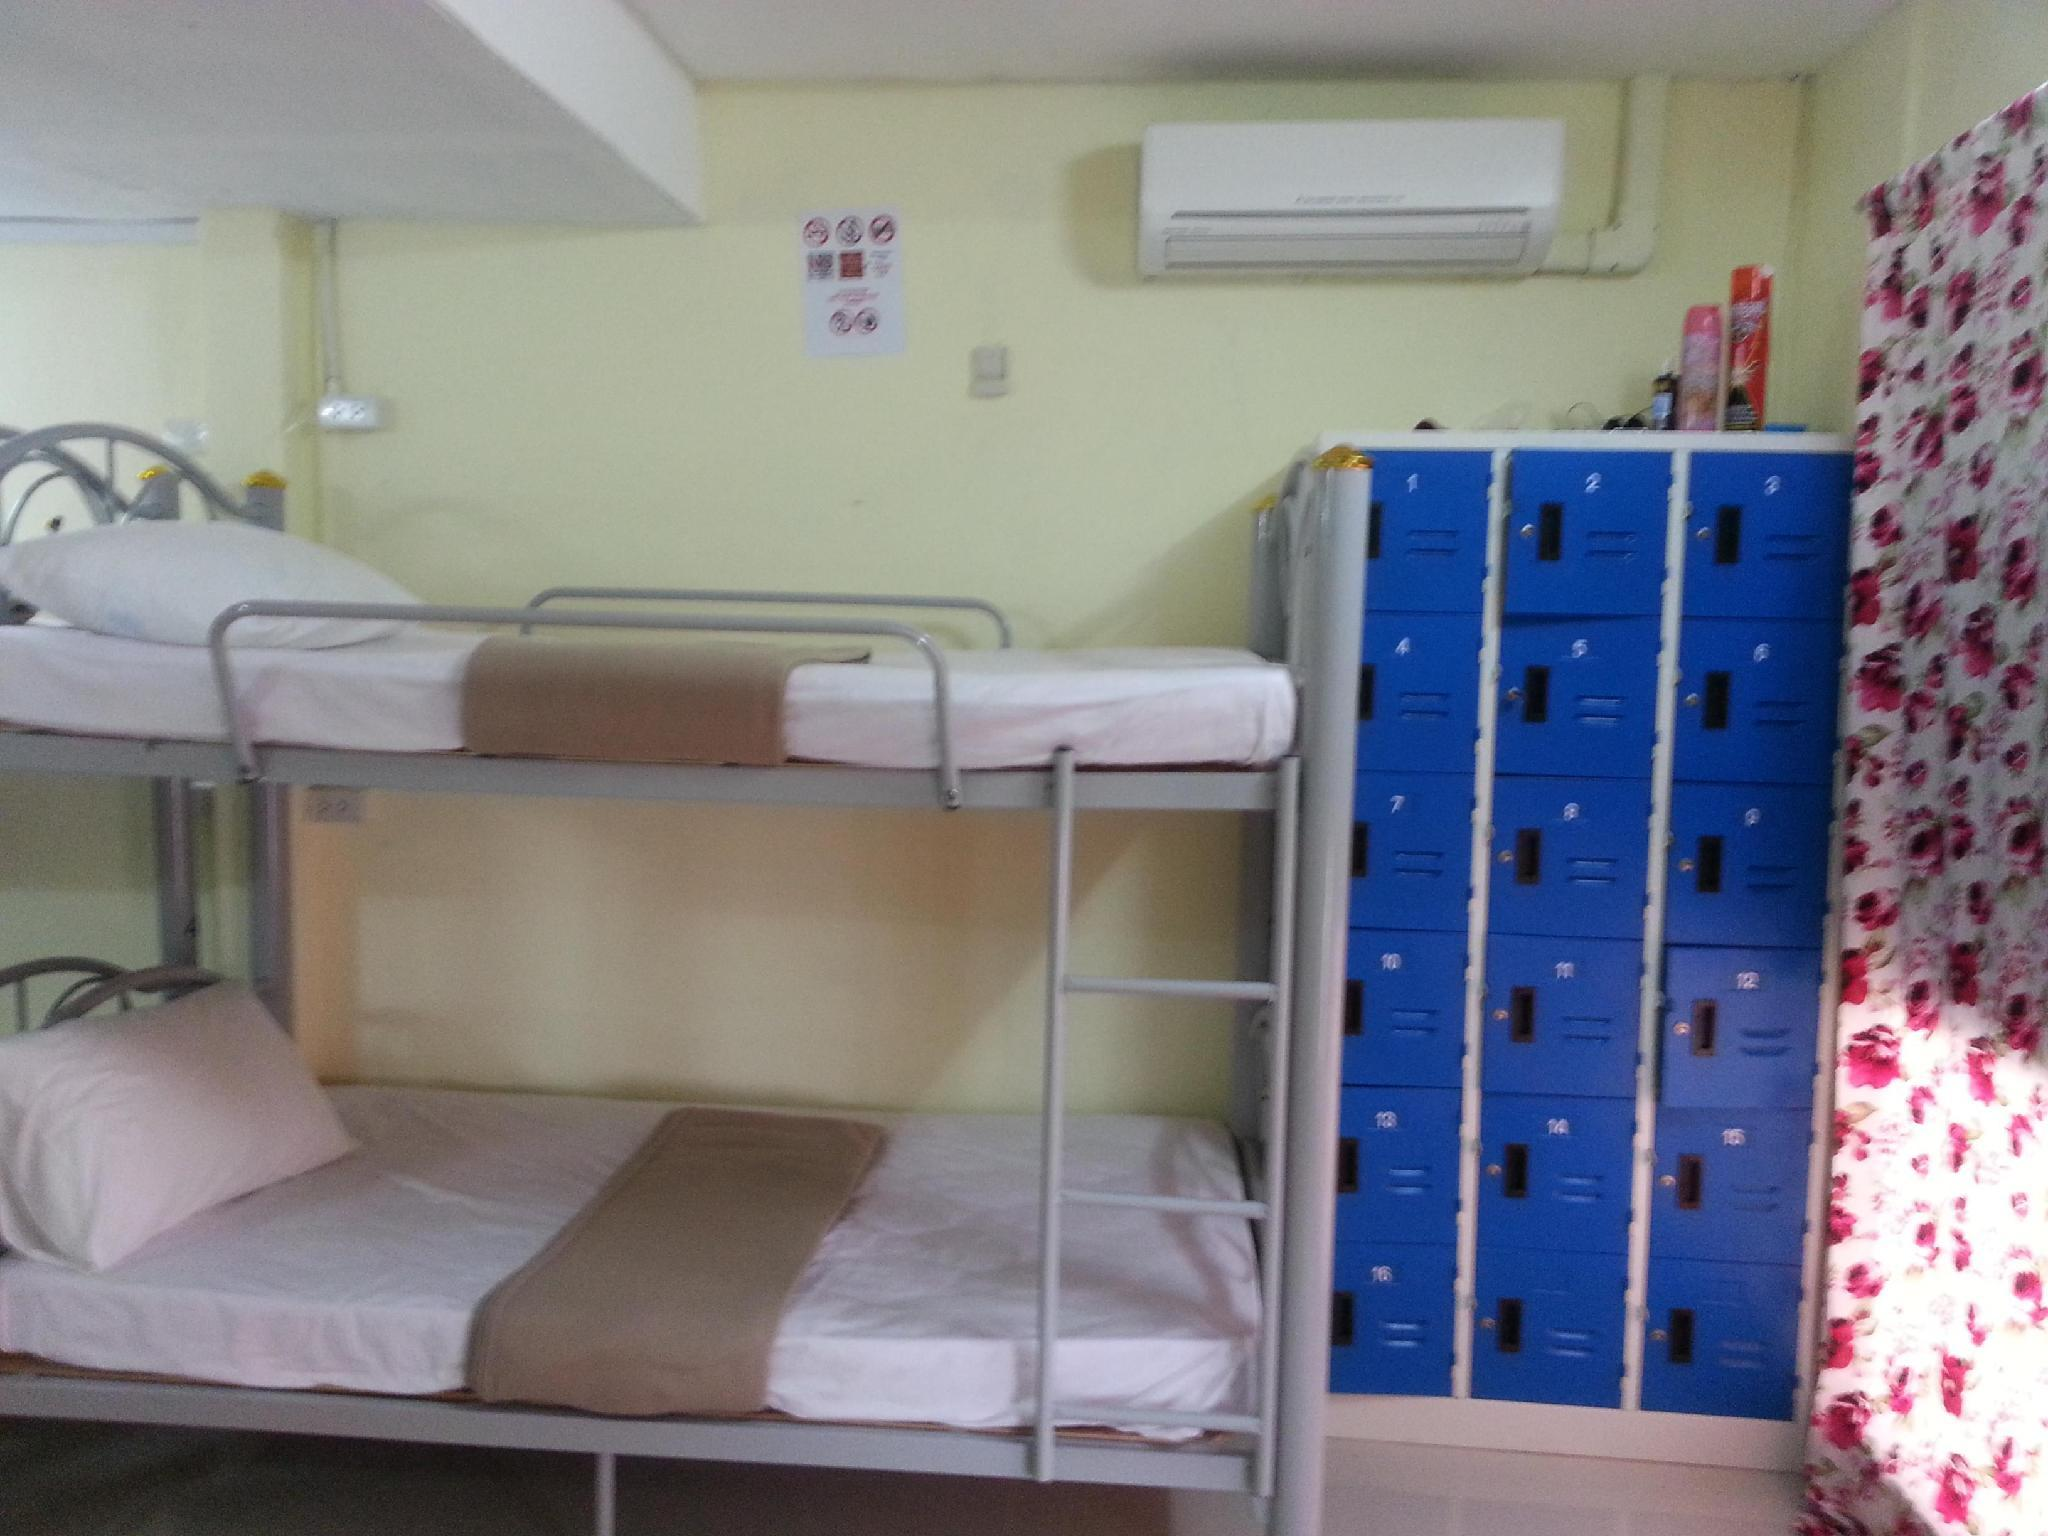 1 Bed in 7-Bed Dormitory